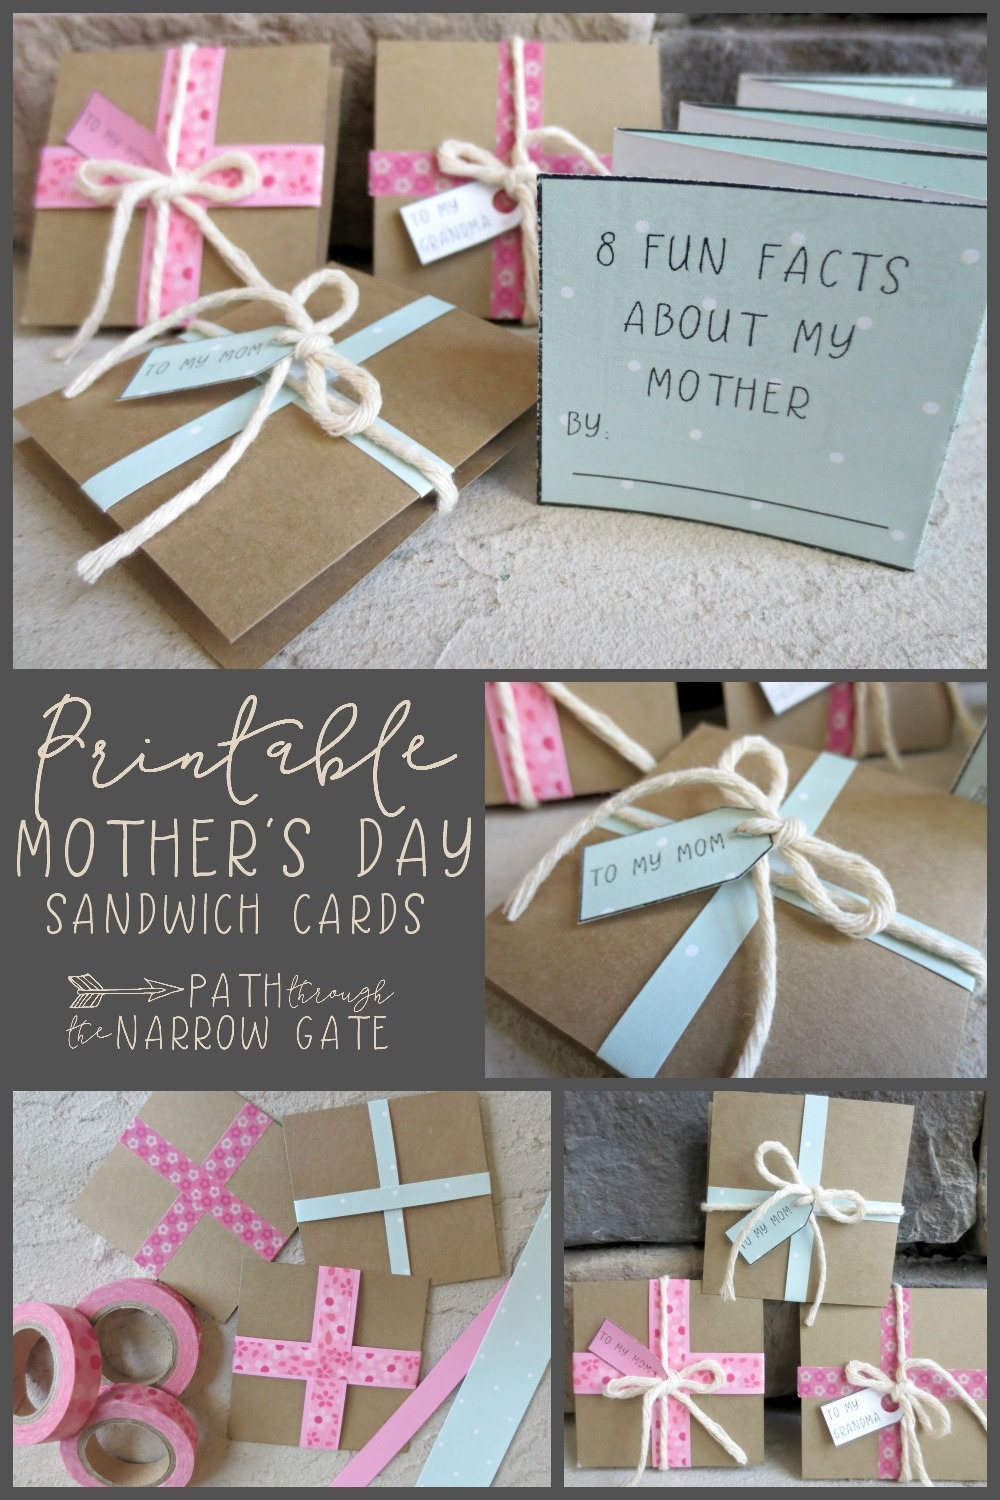 Looking for super-cute Mother's Day Cards, perfect for very young kids to make? If so, these adorable cards are the perfect solution!